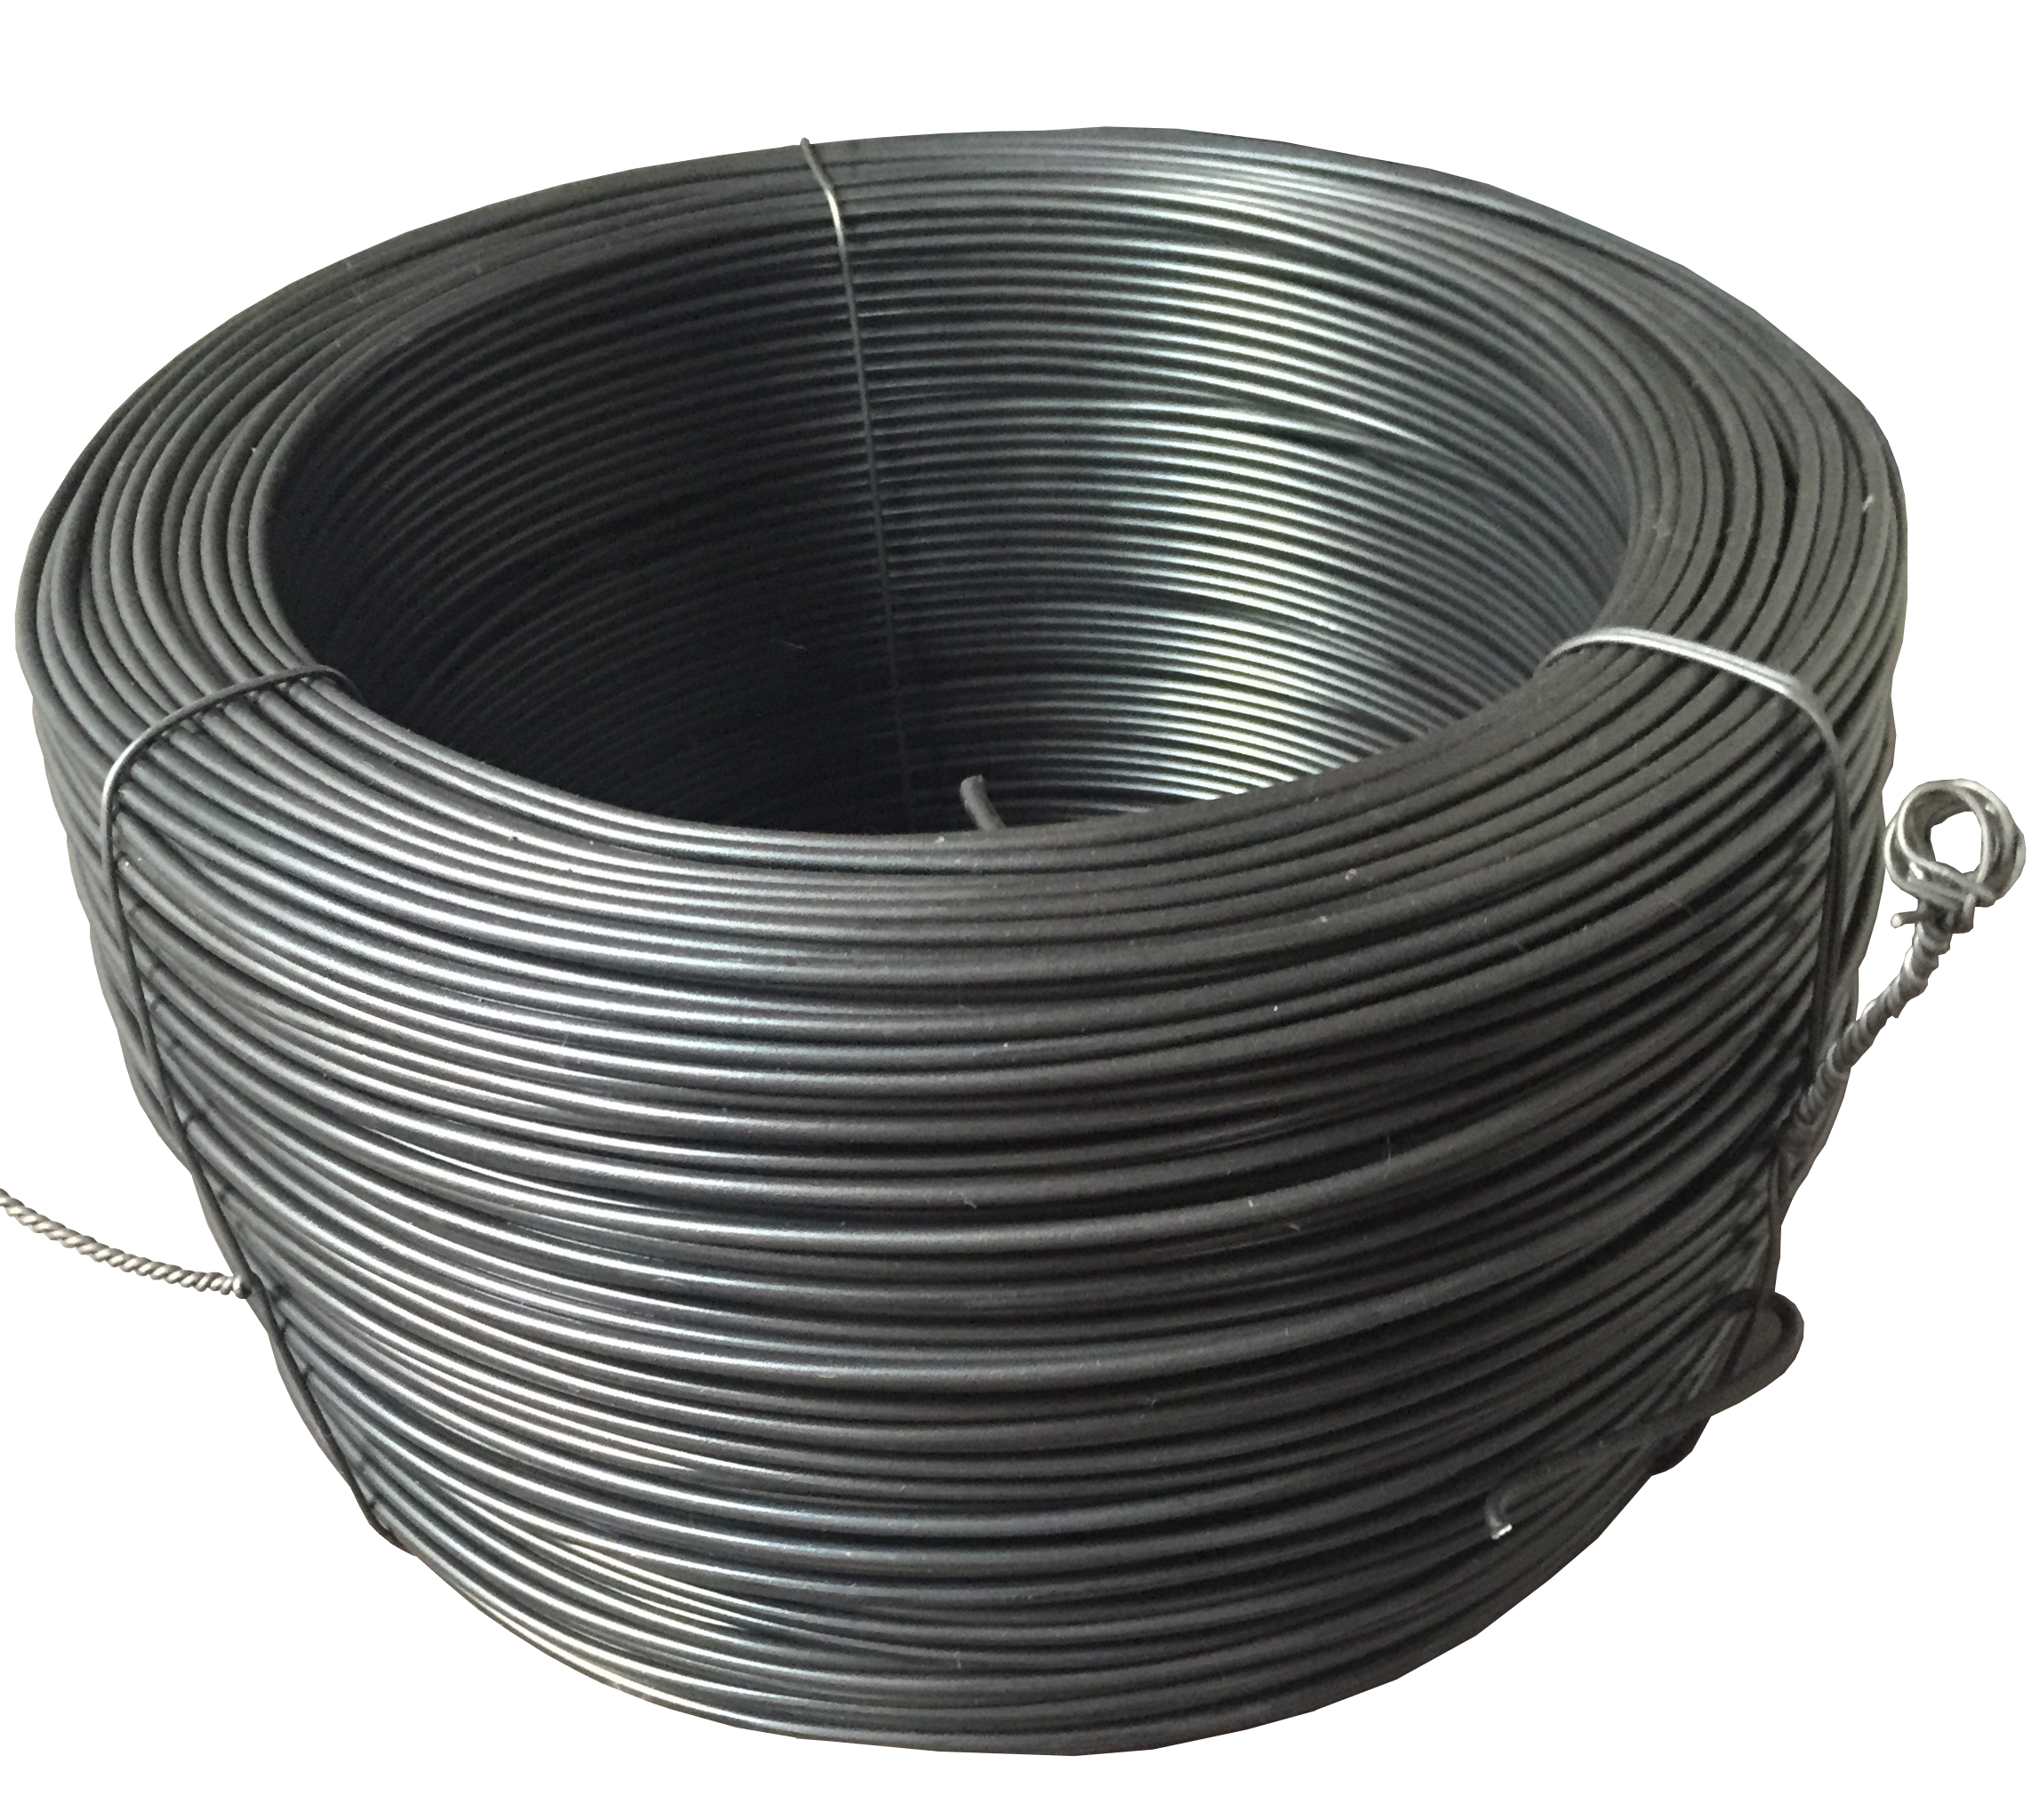 14 Gauge Baling Wire : Magnificent baling wire ideas everything you need to